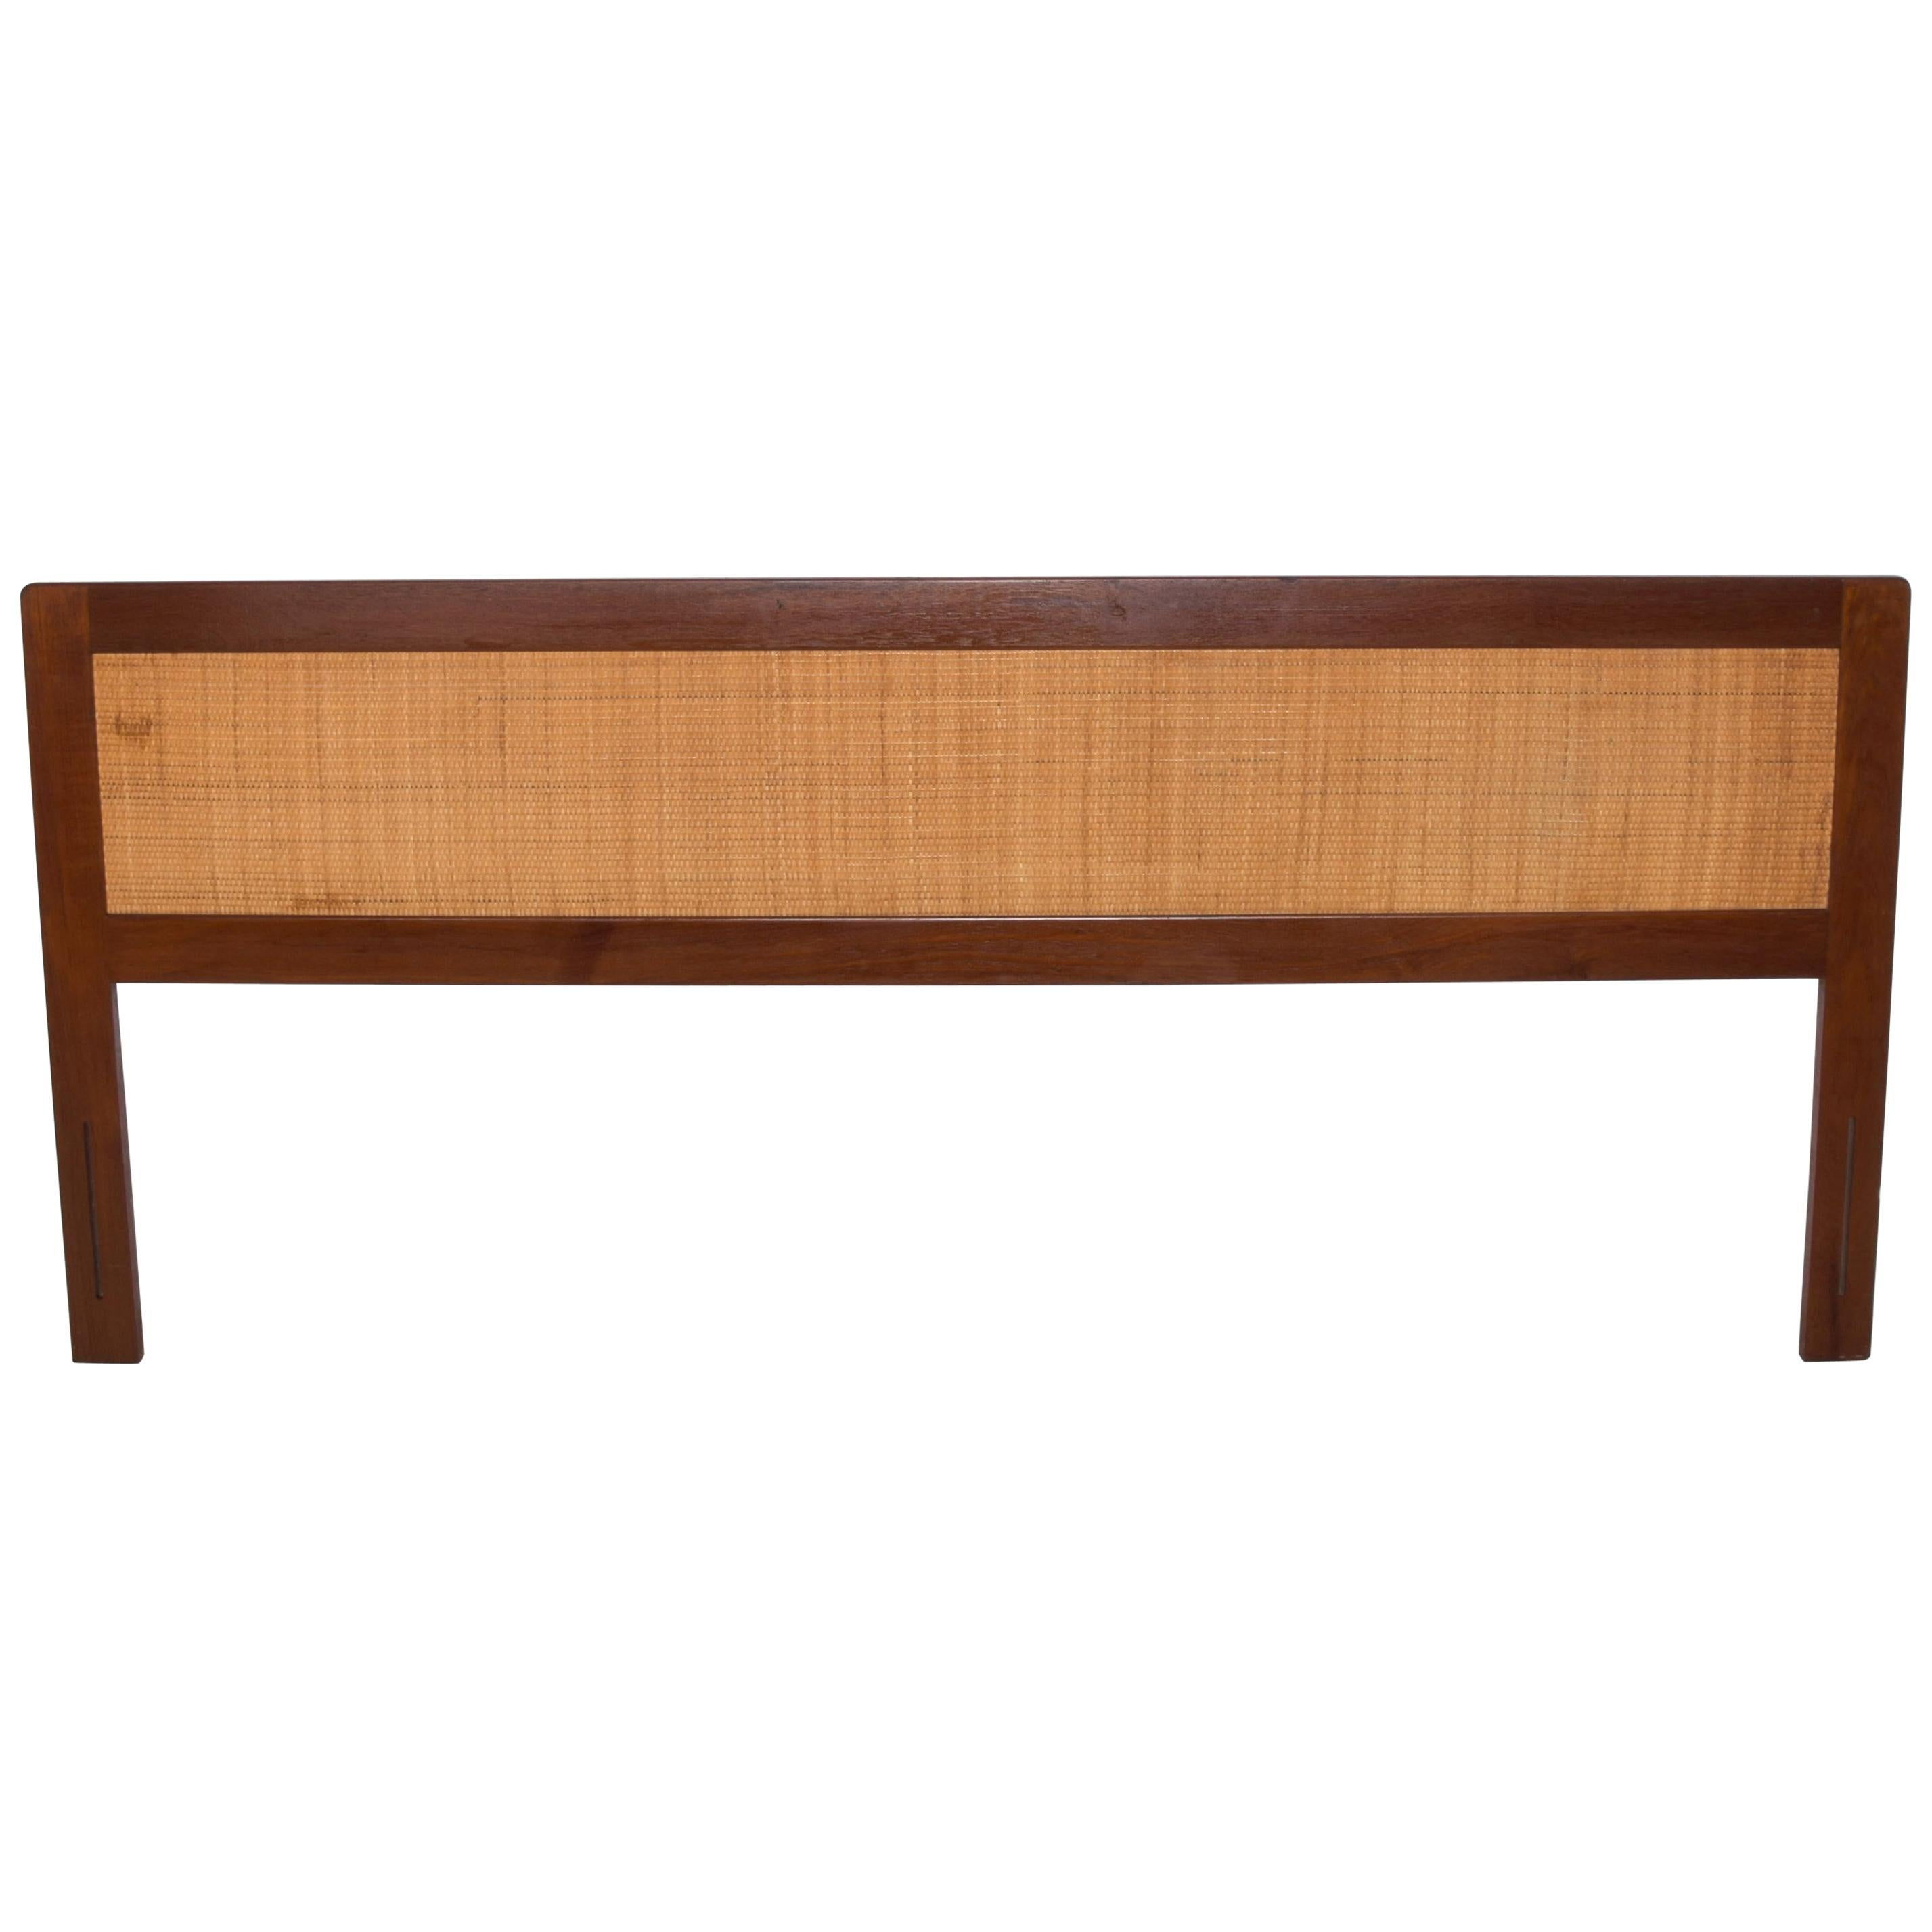 Scandinavian Modern Sleek Teak Wood Cane Back King Size Headboard 1960s Denmark